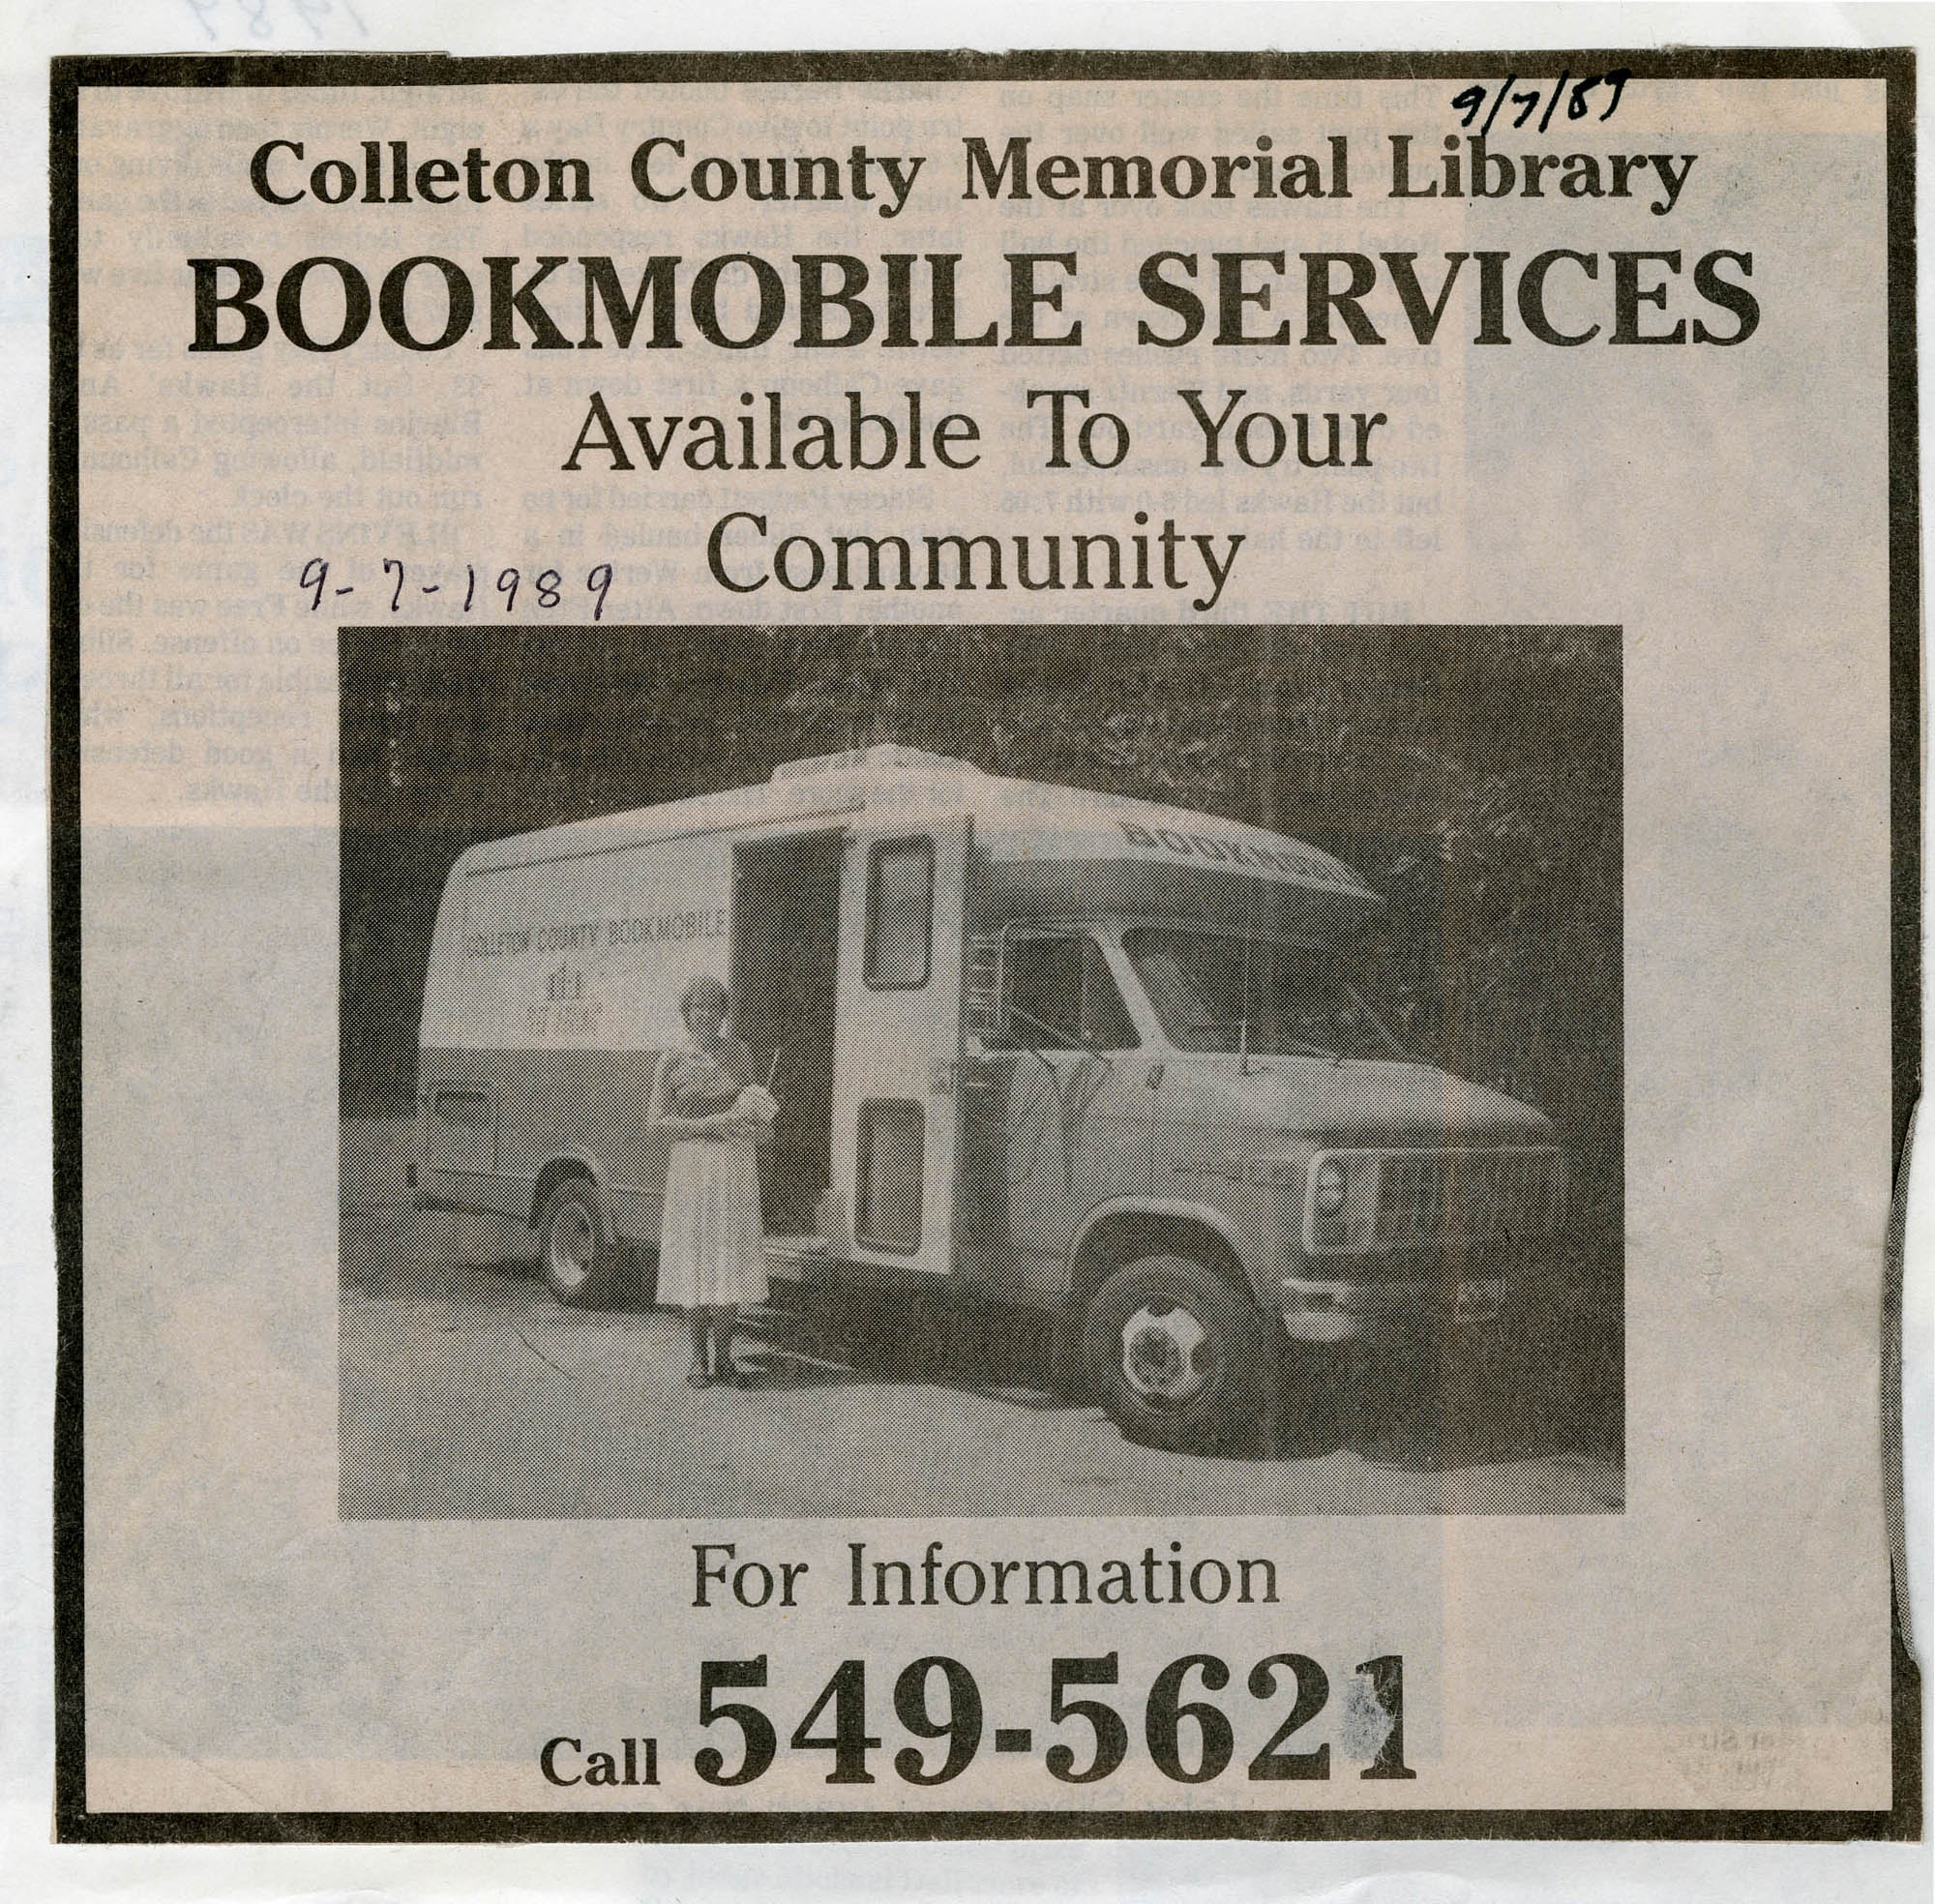 Bookmobile Services Available to Your Community